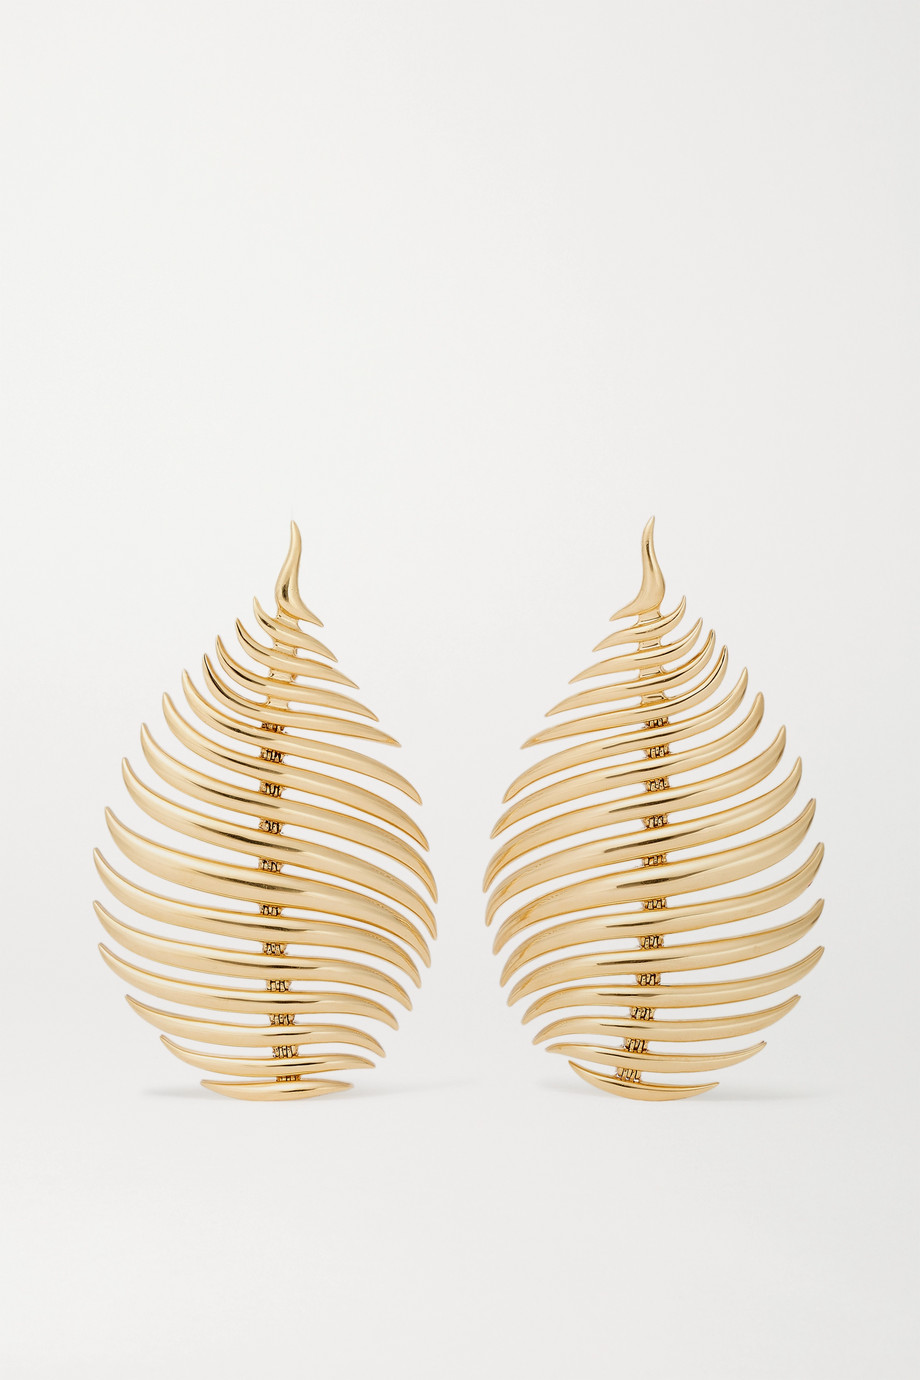 FERNANDO JORGE Flame 18-karat gold earrings